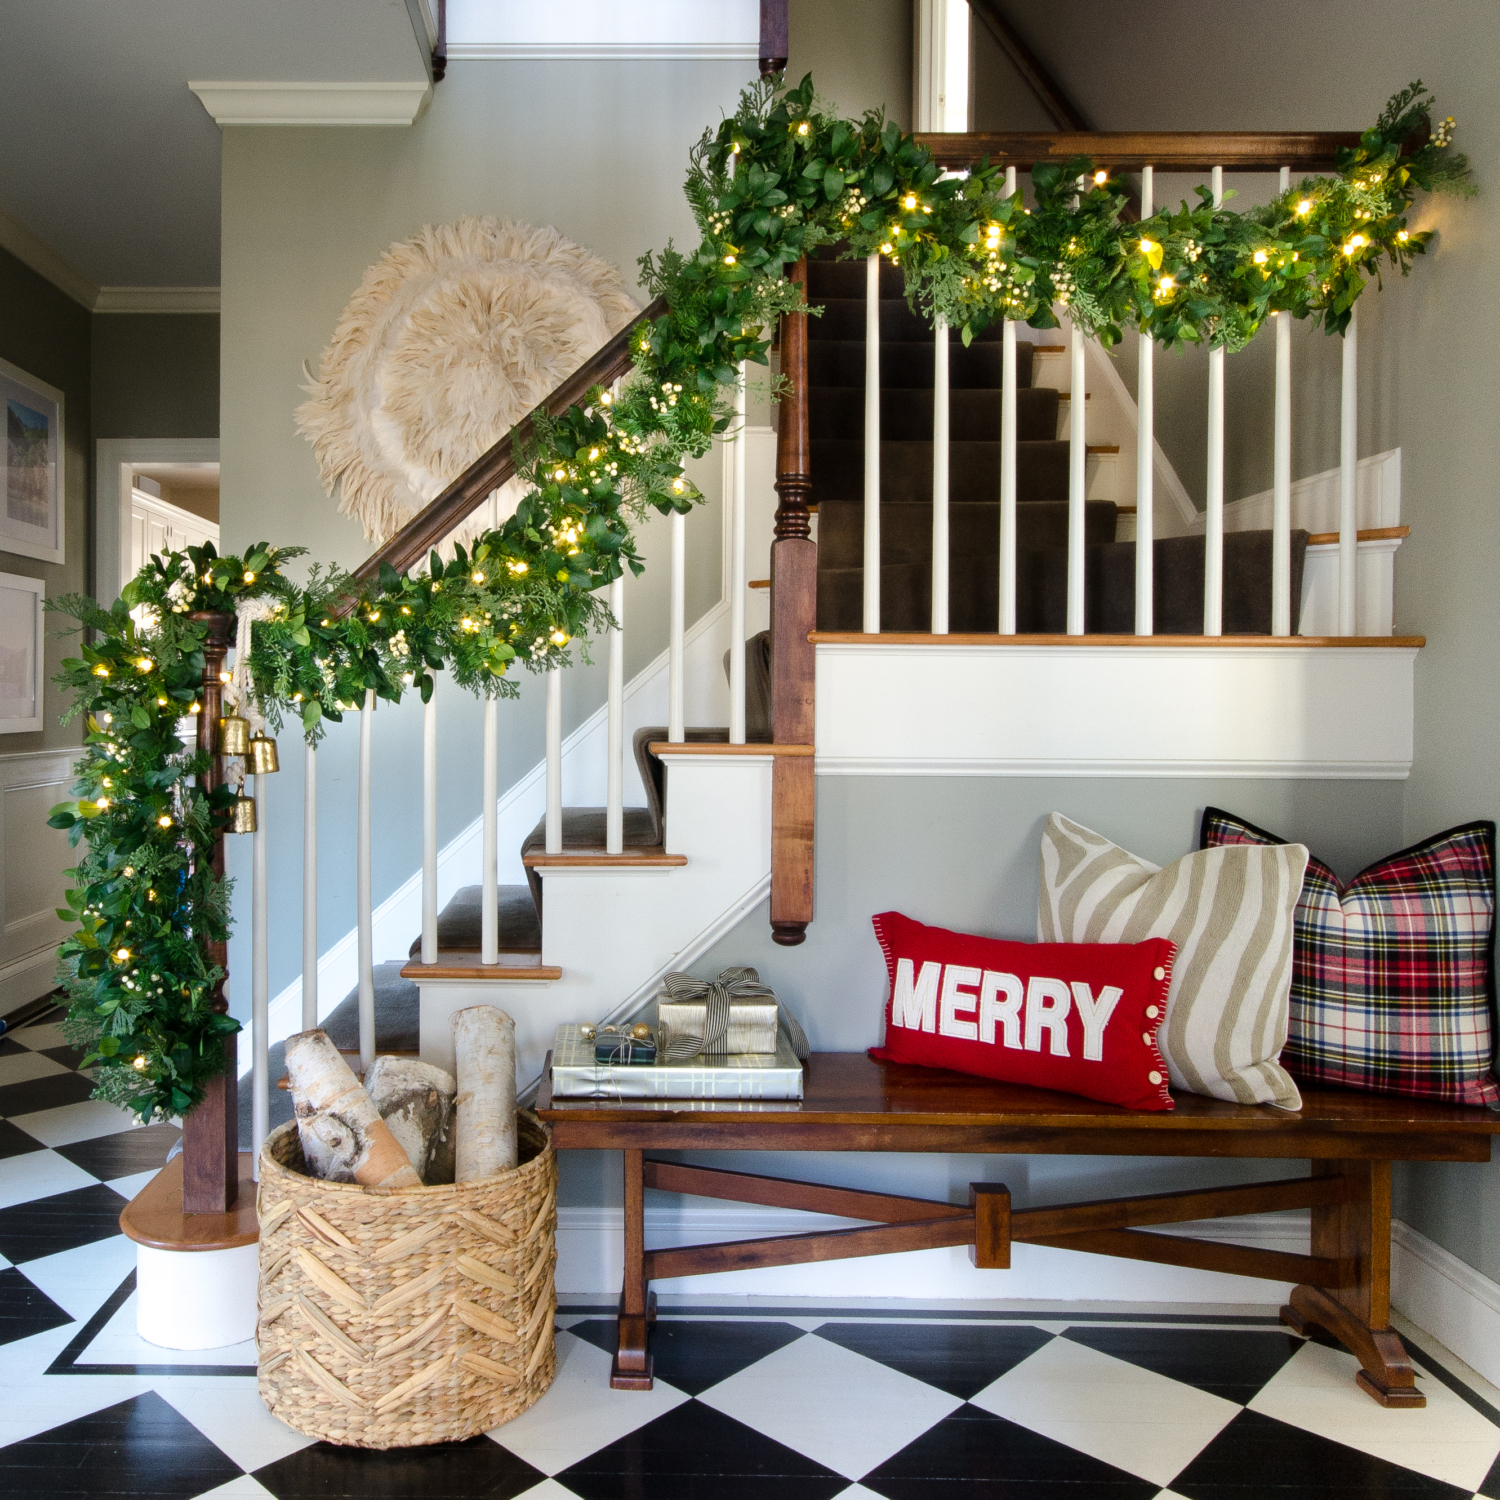 Classic Christmas entry with red, black, white, and greenery